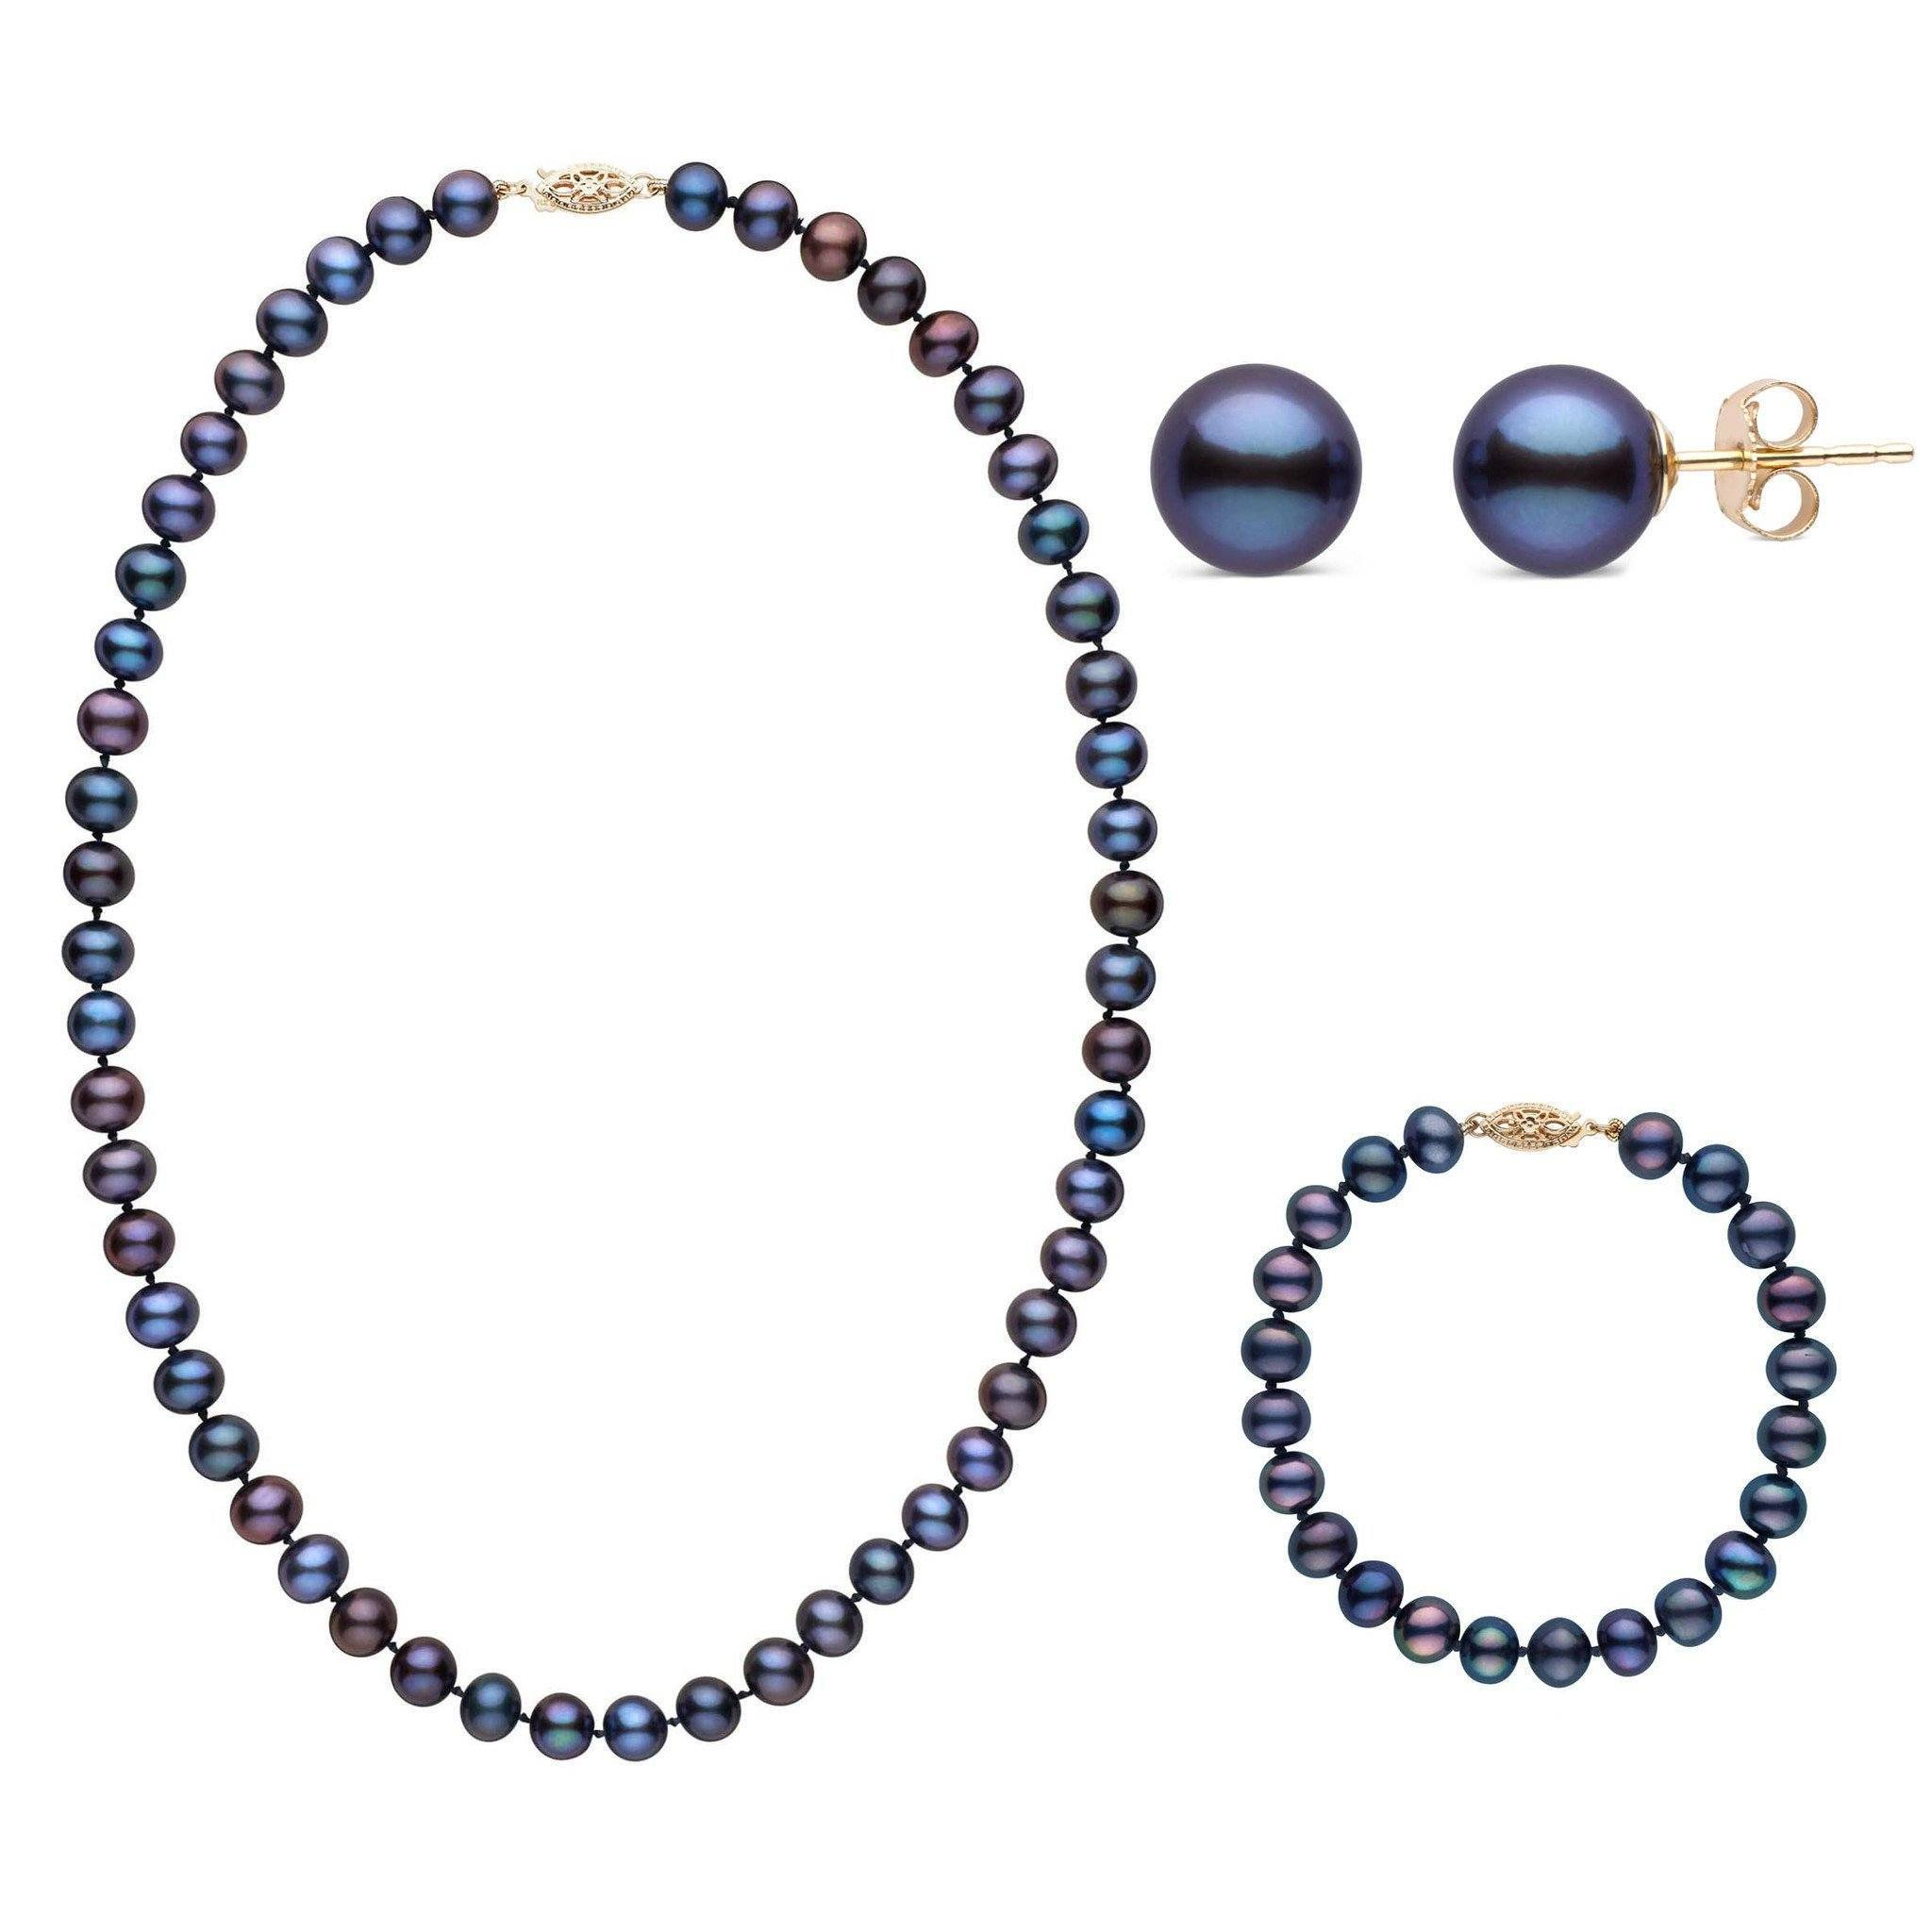 18 Inch 3 Piece Set of 7.5-8.0 mm AA+ Black Freshwater Pearls